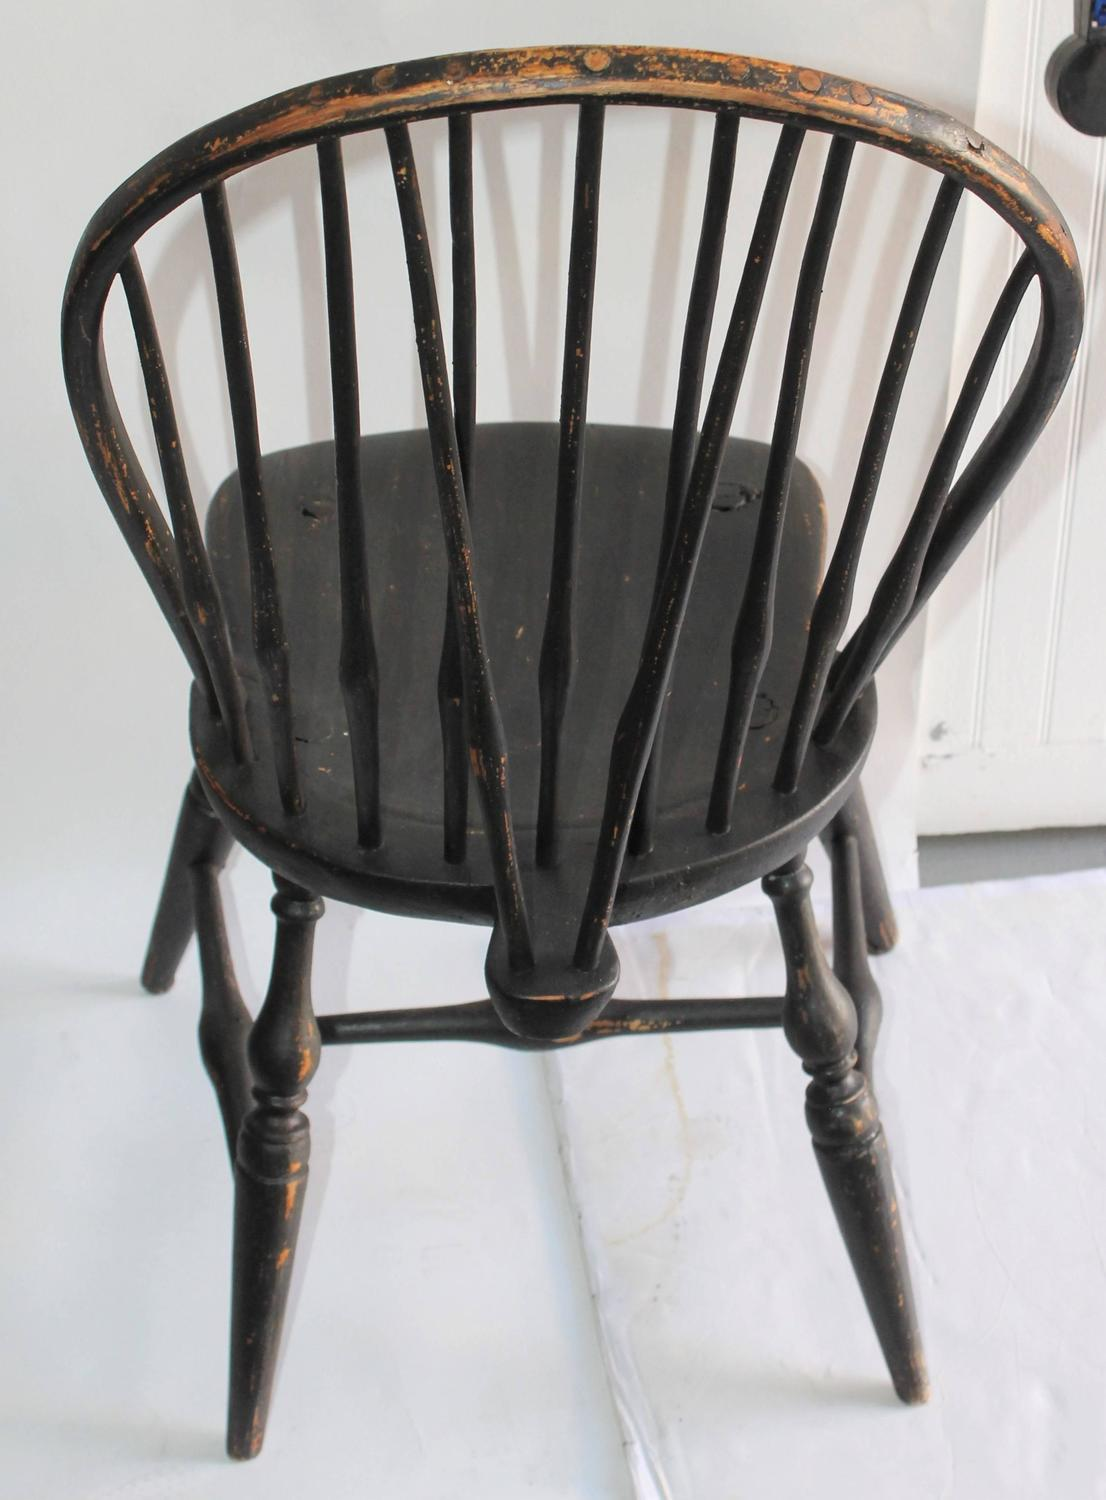 windsor back chairs for sale ingenuity high chair 3 in 1 manual set of four 18th century black painted brace